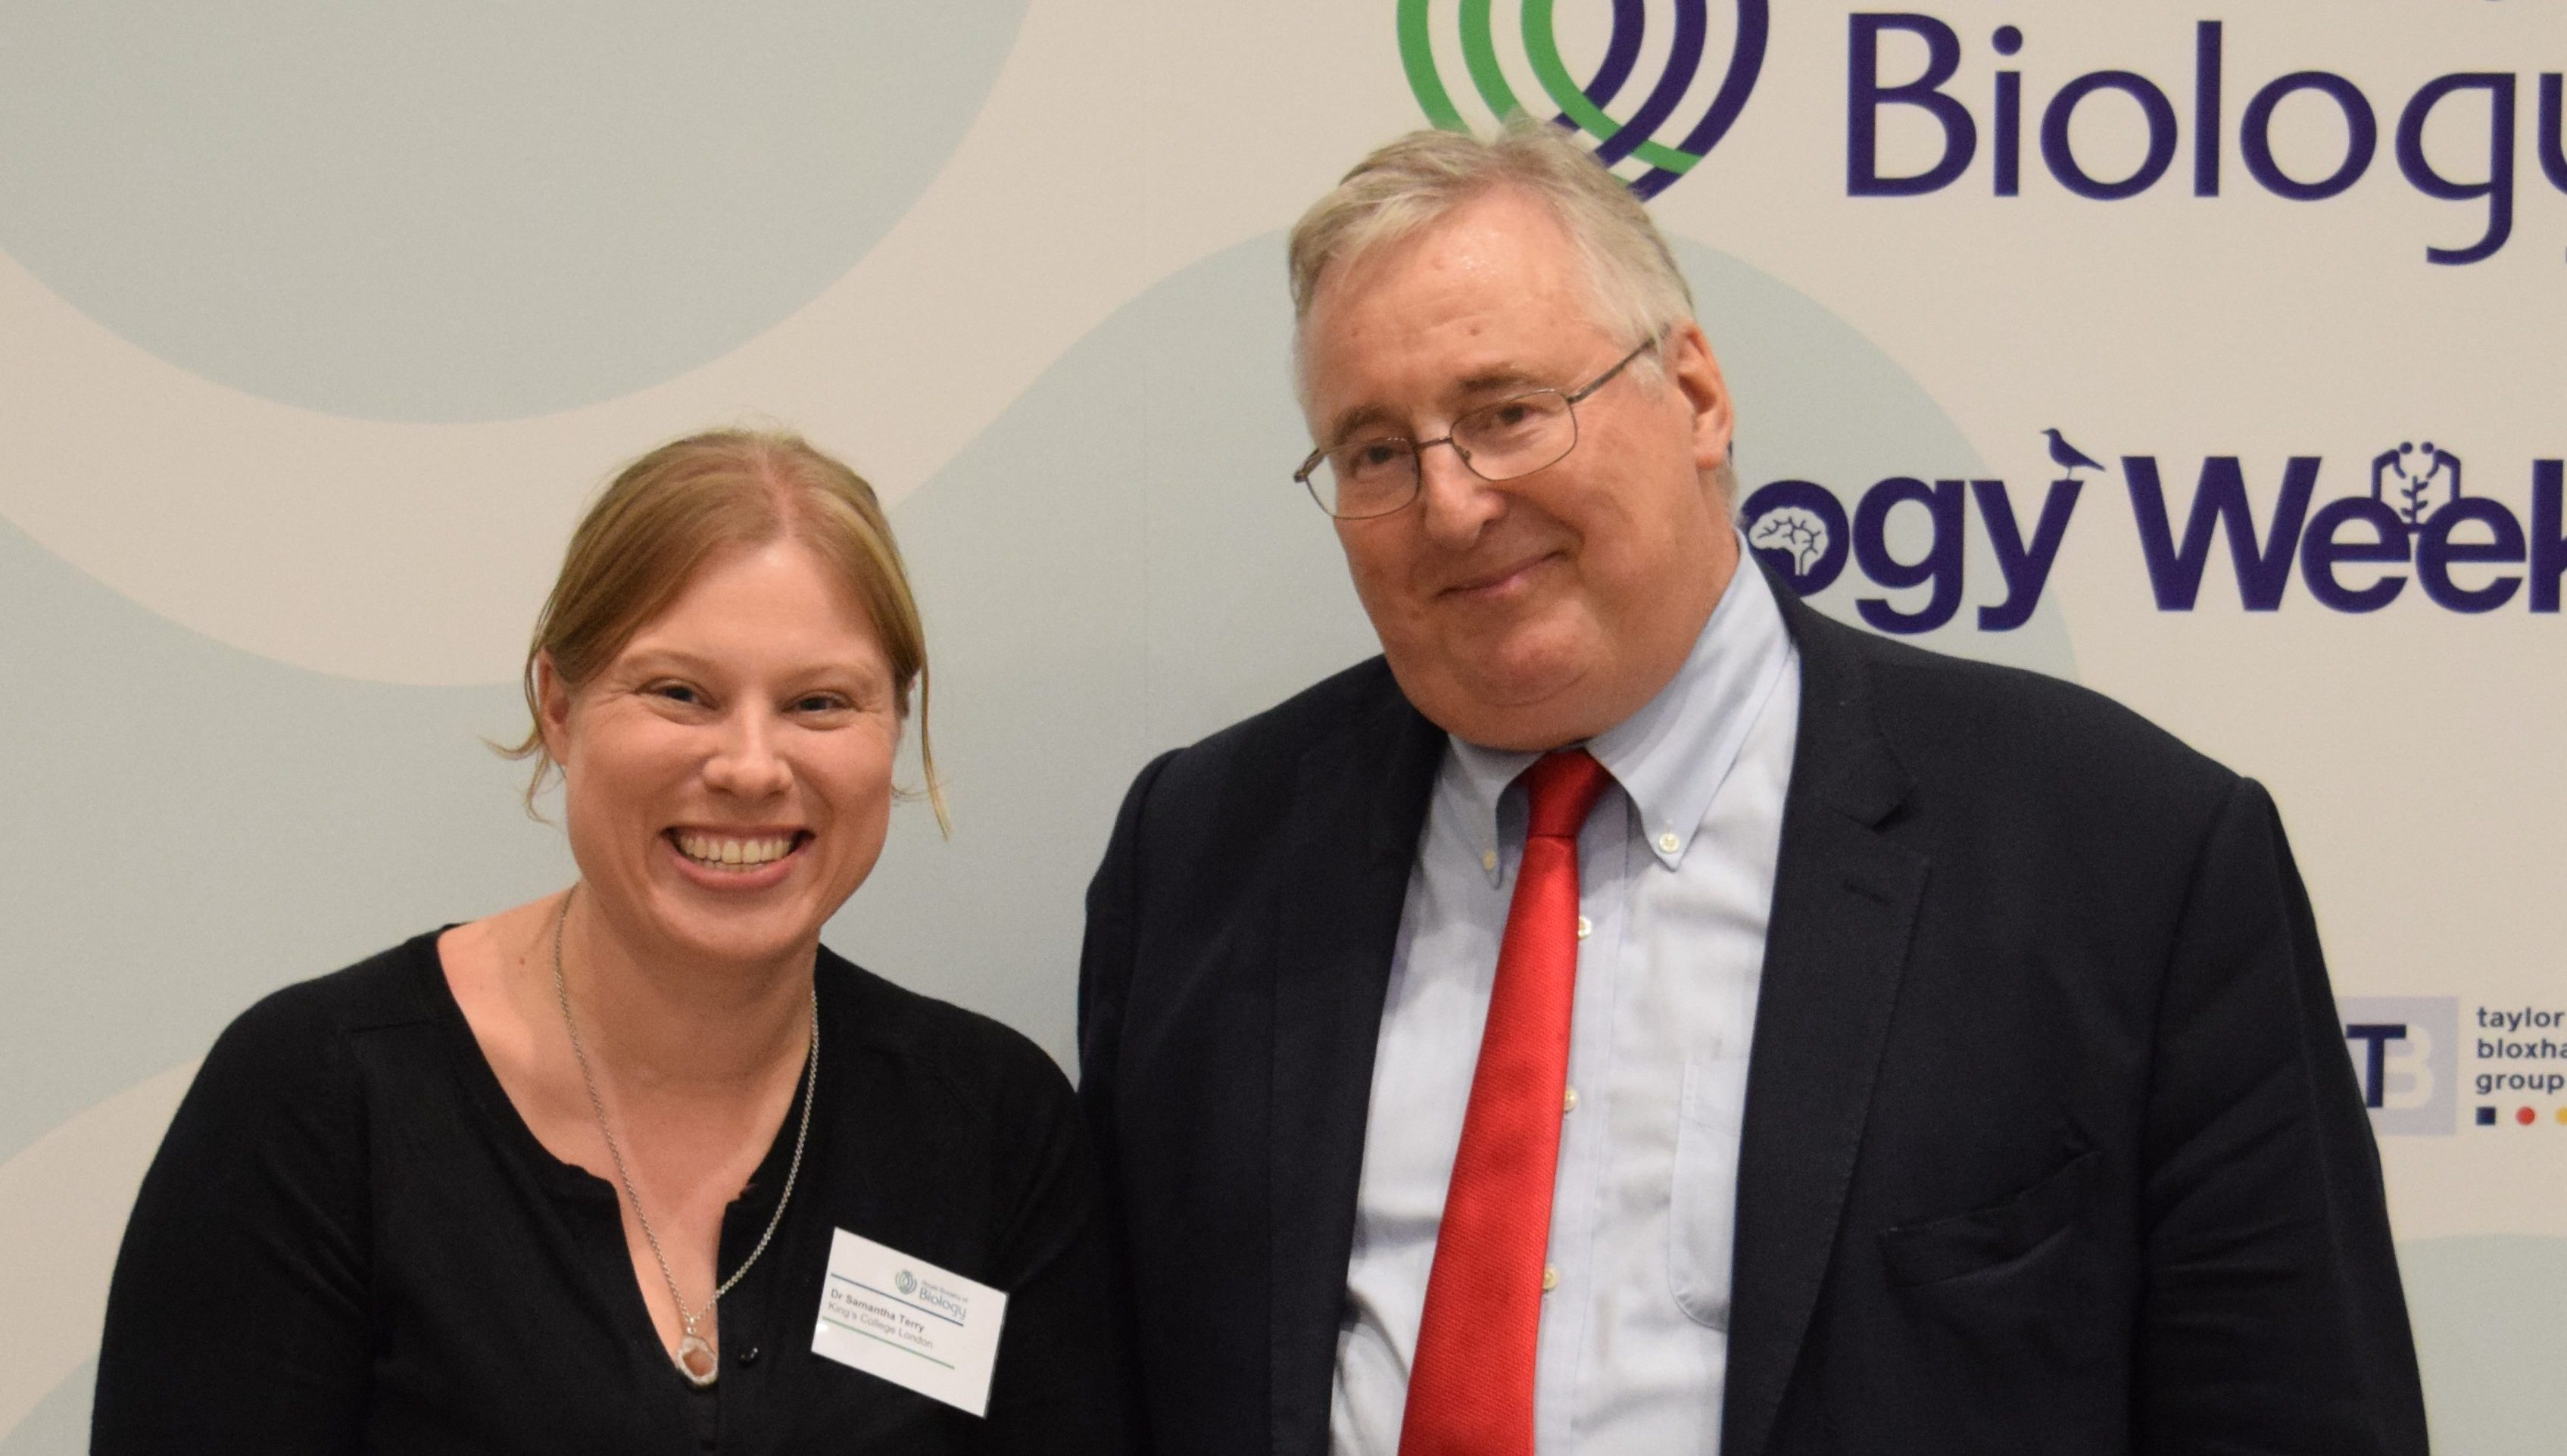 Dr Sam Terry and Stephen Benn at the RSB Awards